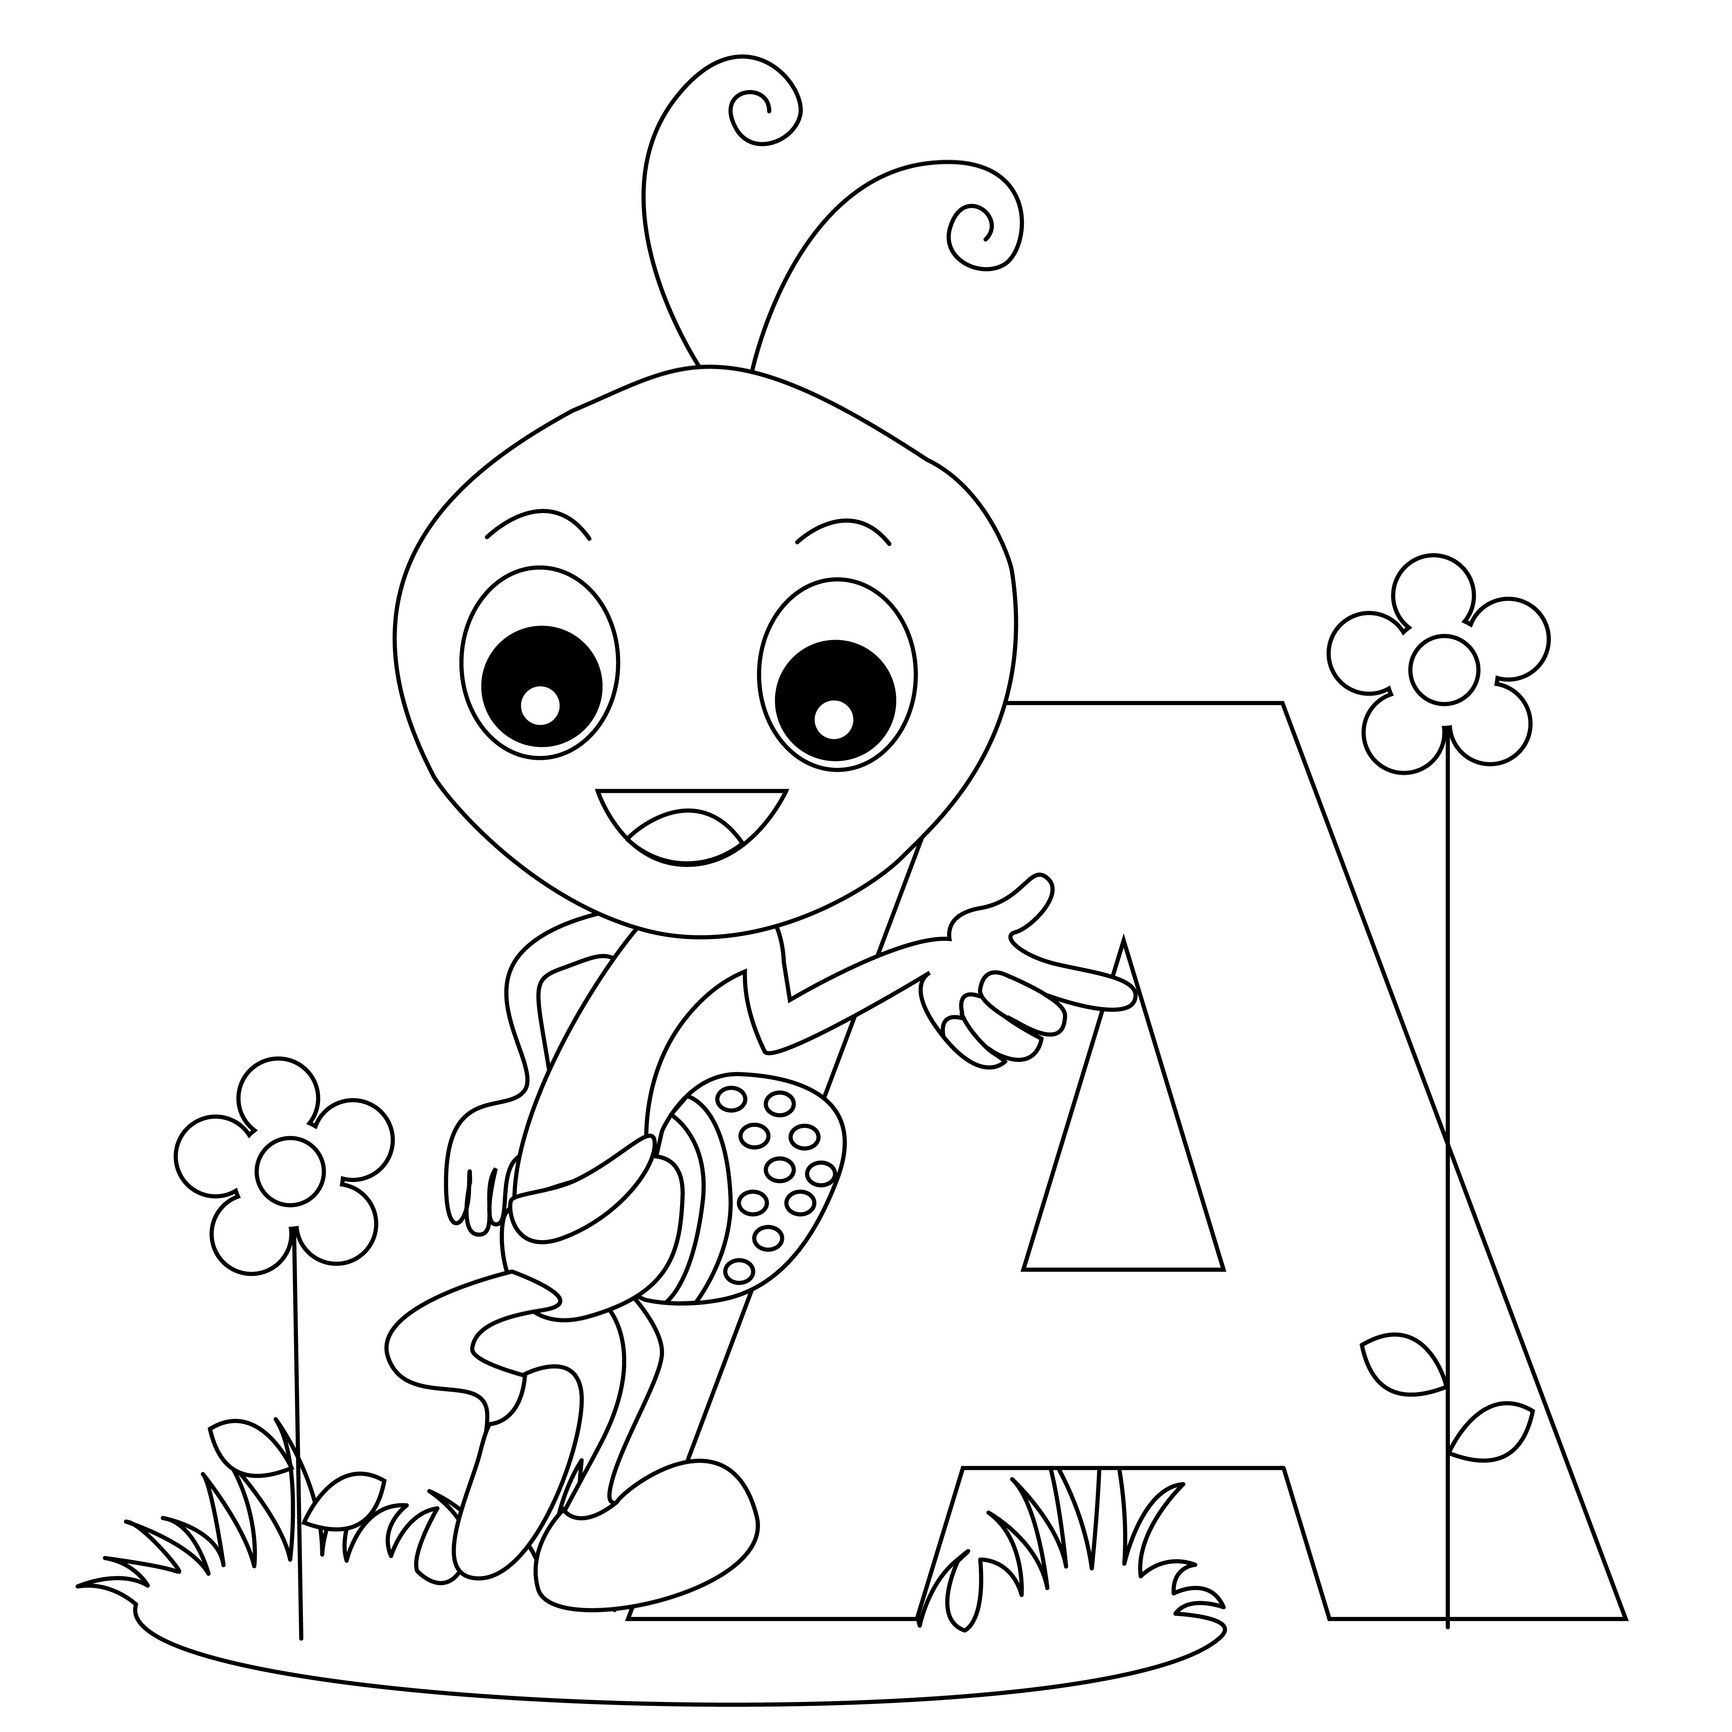 Animal Alphabet Letter A Is For Ant! Here's A Simple | School - Free Printable Animal Alphabet Letters